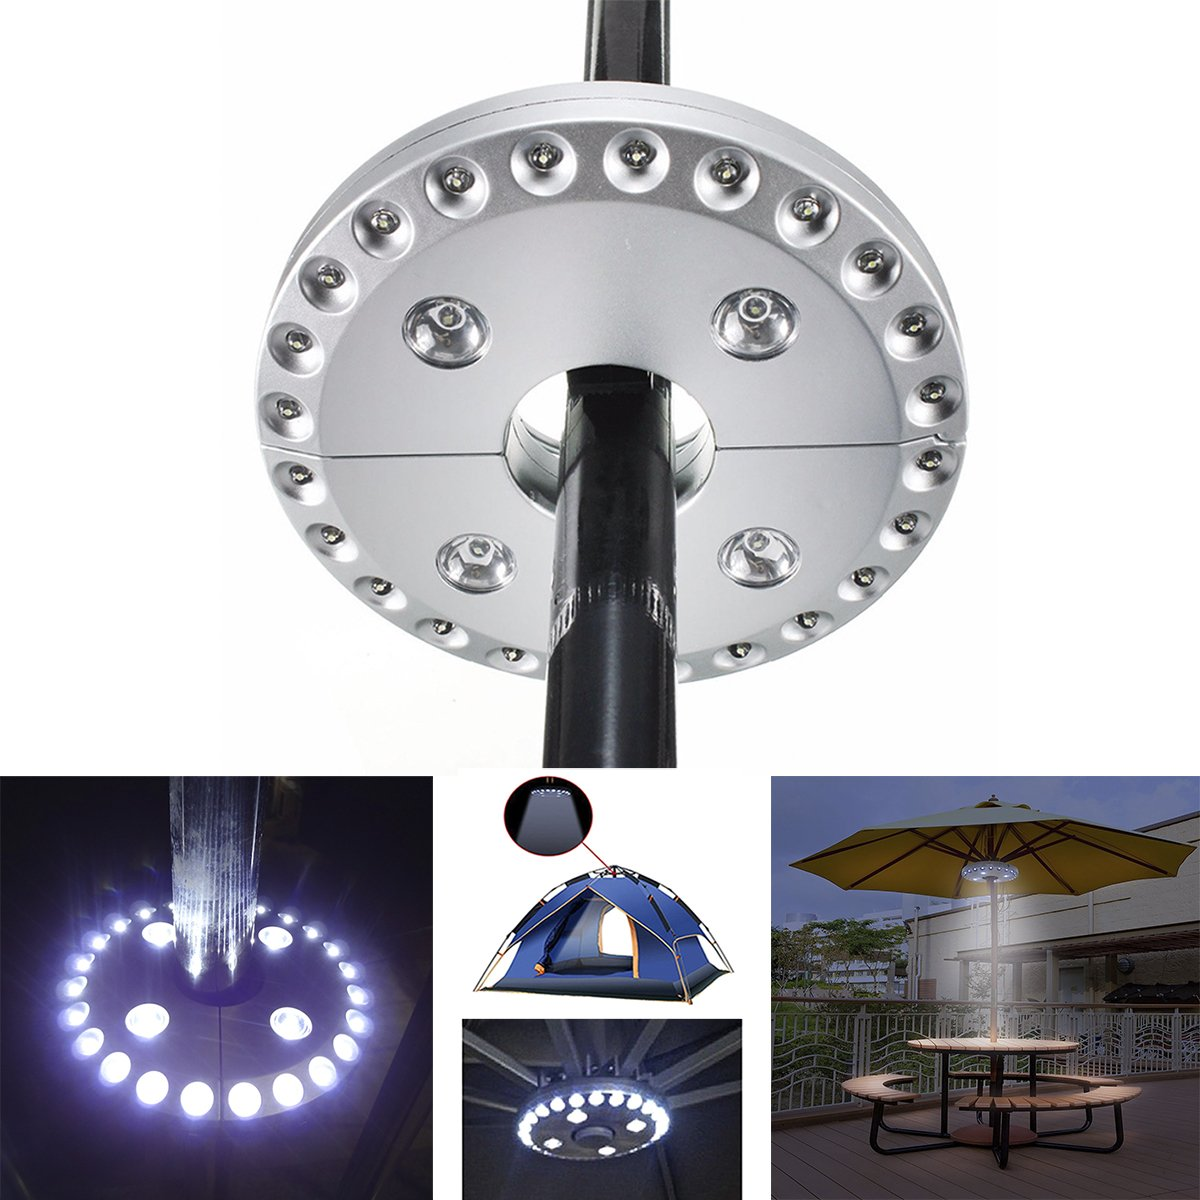 Miaoo 28 LED Cordless Parasol Lights with 28 Super Bright LED for Patio Umbrellas, Camping Tents or Outdoor Activities (Black)